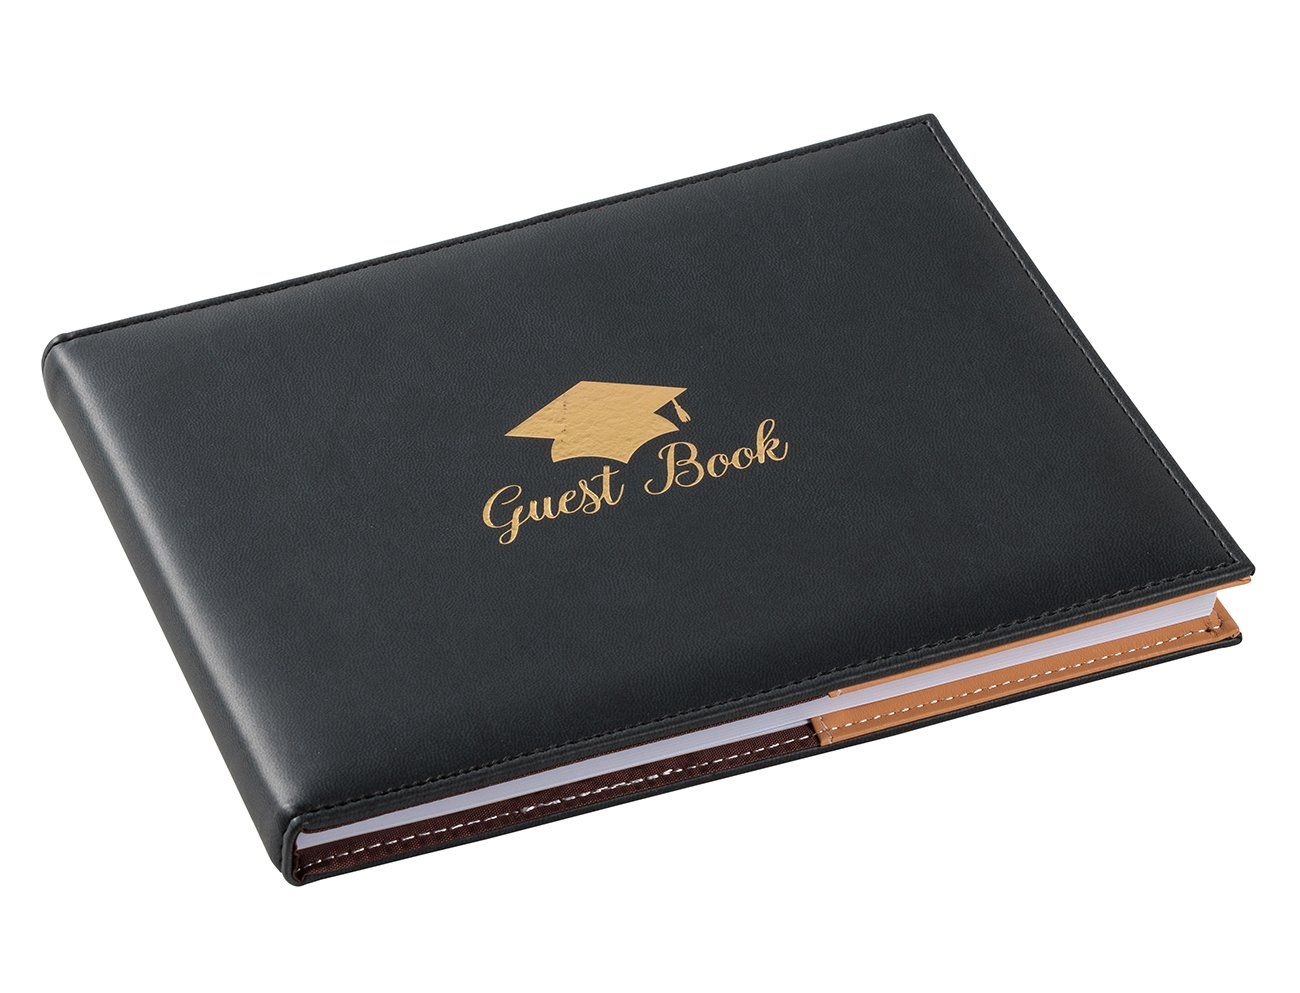 Juvale Graduation Guestbook - Guest Sign-in Book, Guest Registry, Graduation Party Supplies, Black, 8.3 x 6.5 x 0.3 Inches